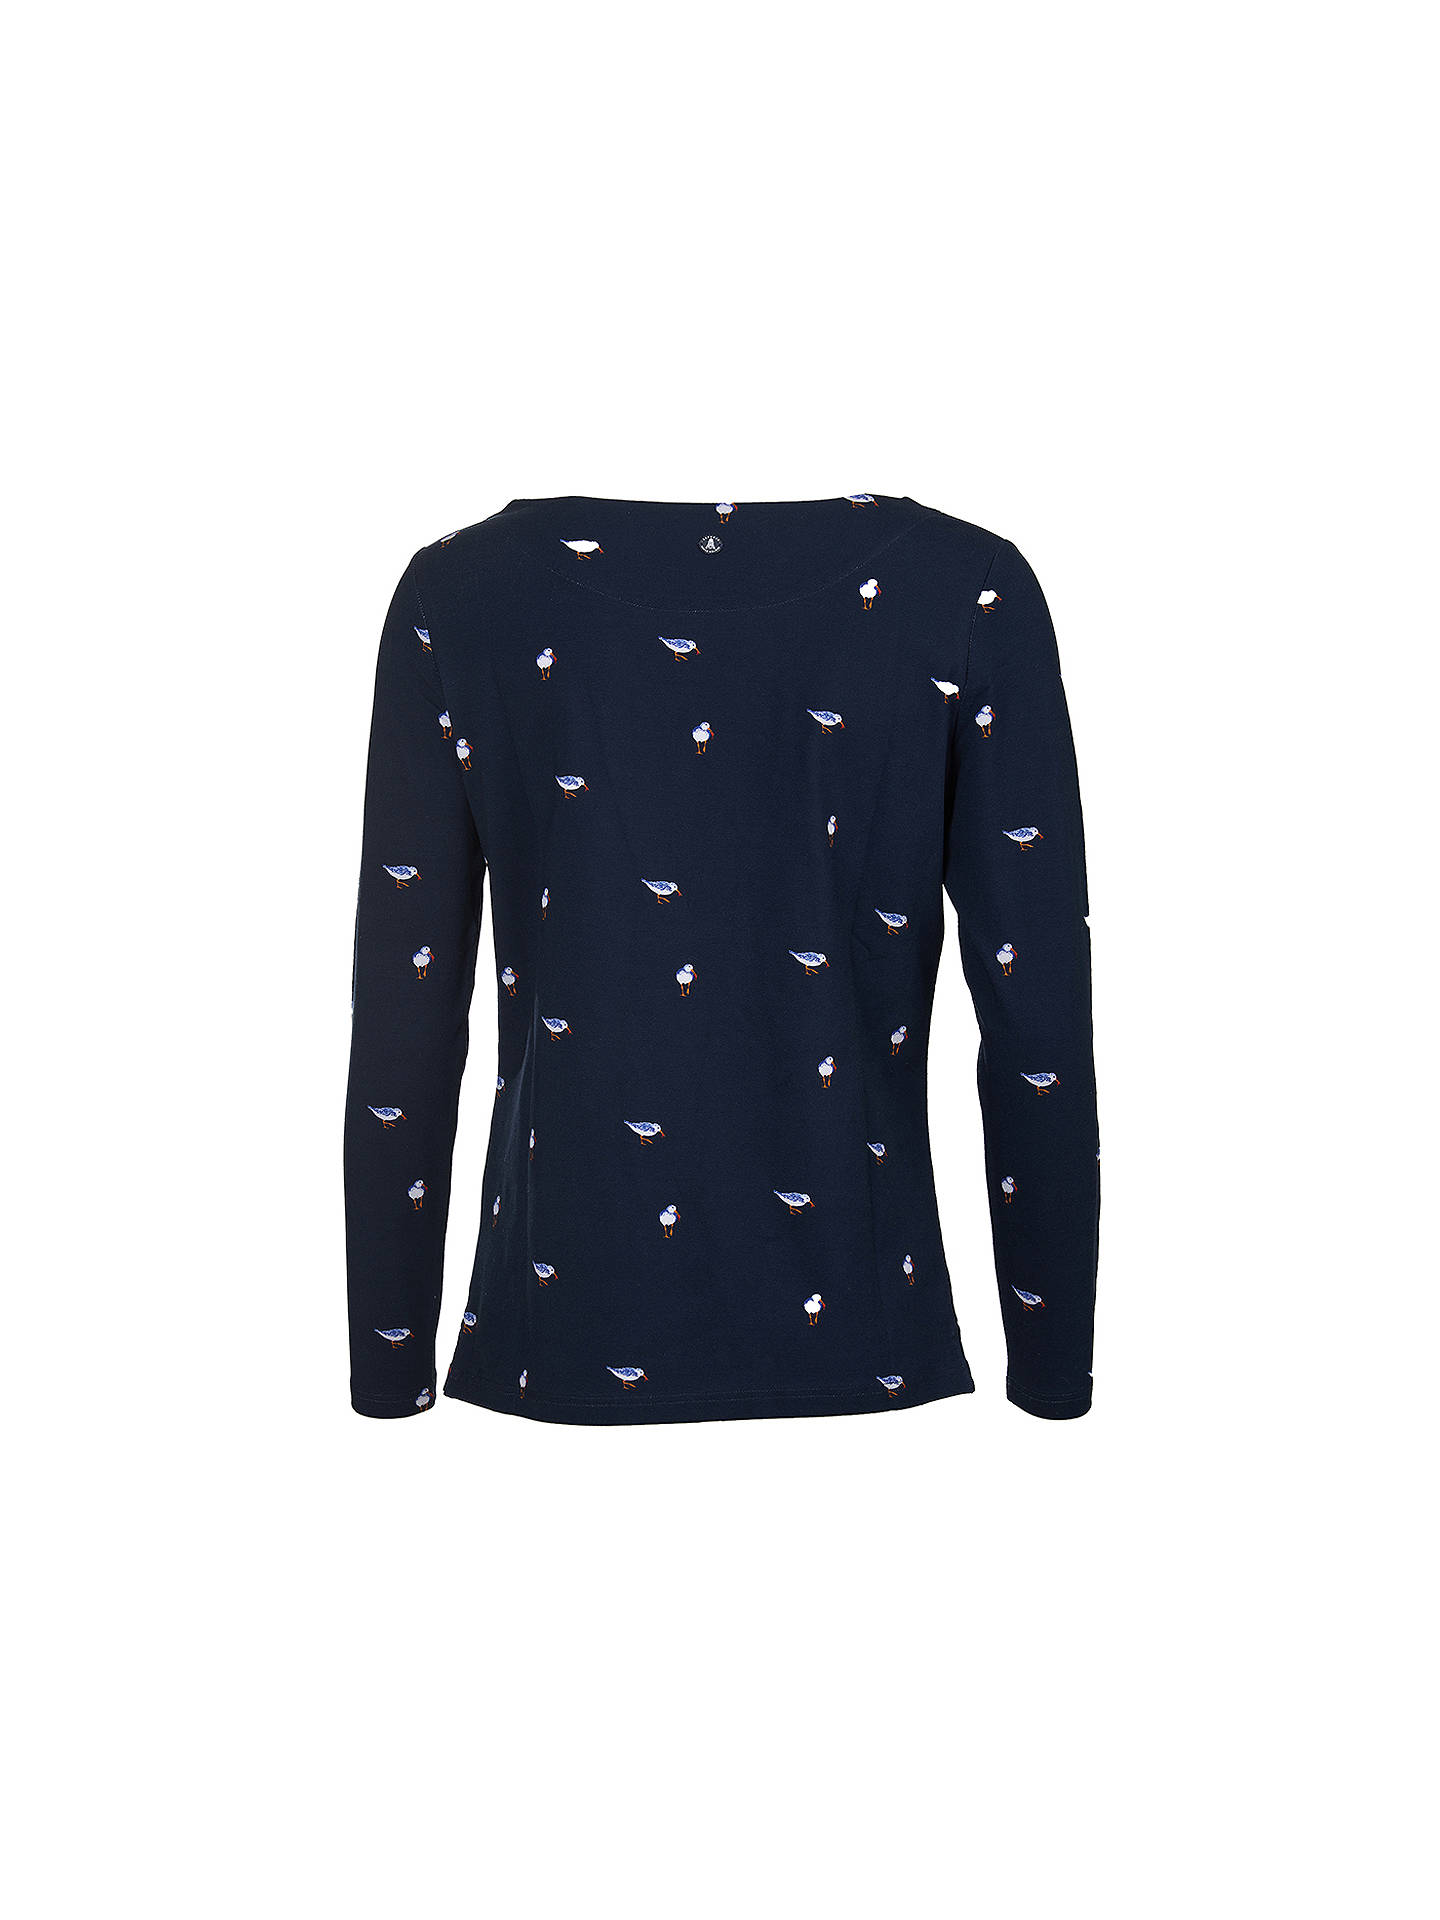 BuyBarbour Stronsay Long Sleeve T-Shirt, Navy, 8 Online at johnlewis.com